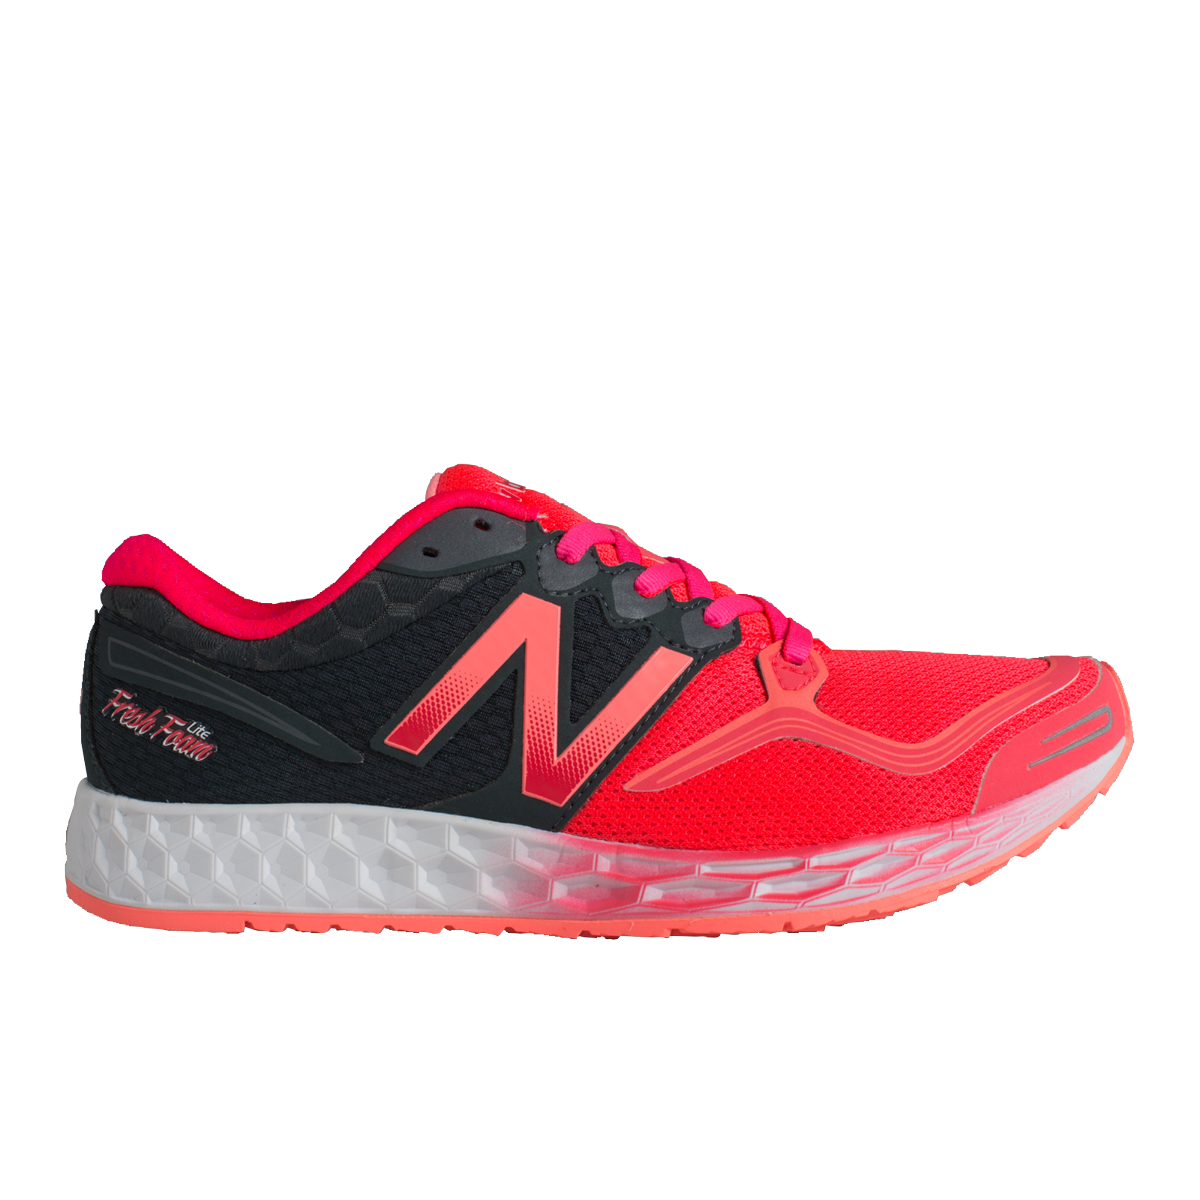 New Balance Fresh Foam Boracay, Fresh Foam, Boracay, Fresh Foam Boracay, New Balance Fresh Foam Zante, Fresh Foam Zante, Foam Zante, Zante, New Balance, brooks running, dudessinauxpodiums, du dessin aux podiums, shoe store, sports shoes, cross training shoes, new balance stores